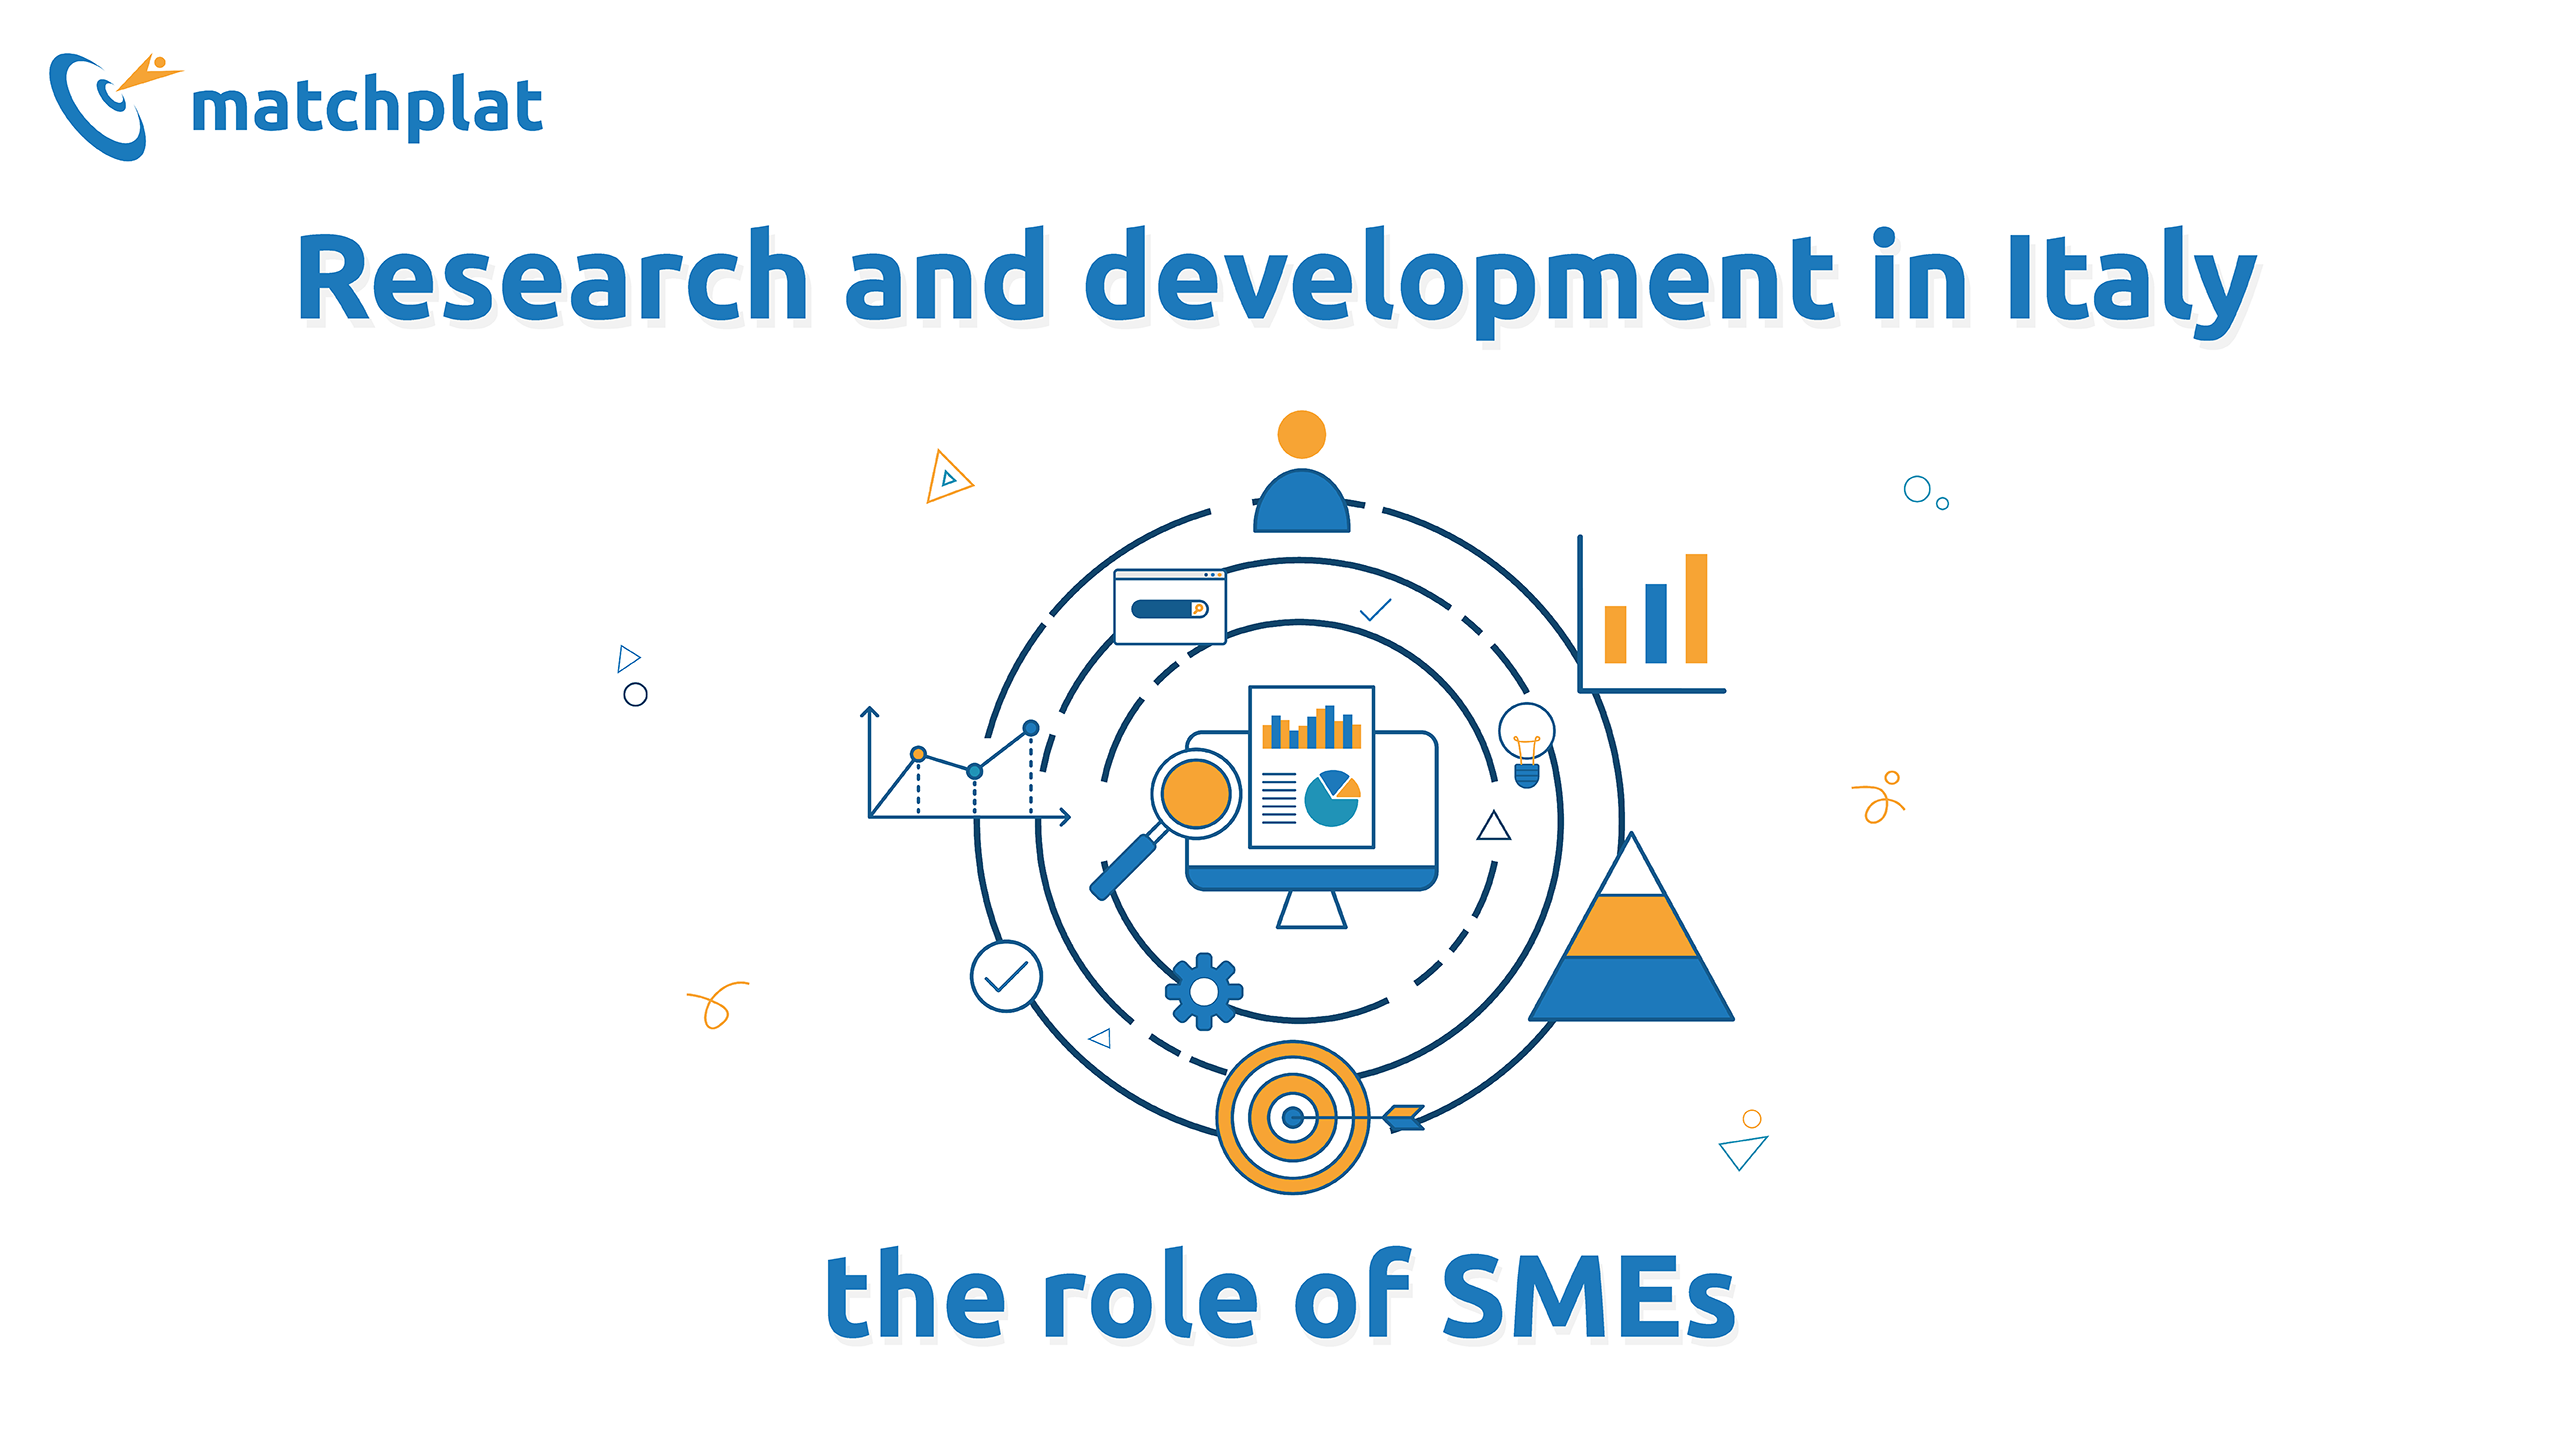 R&D in Italy: the role of SMEs